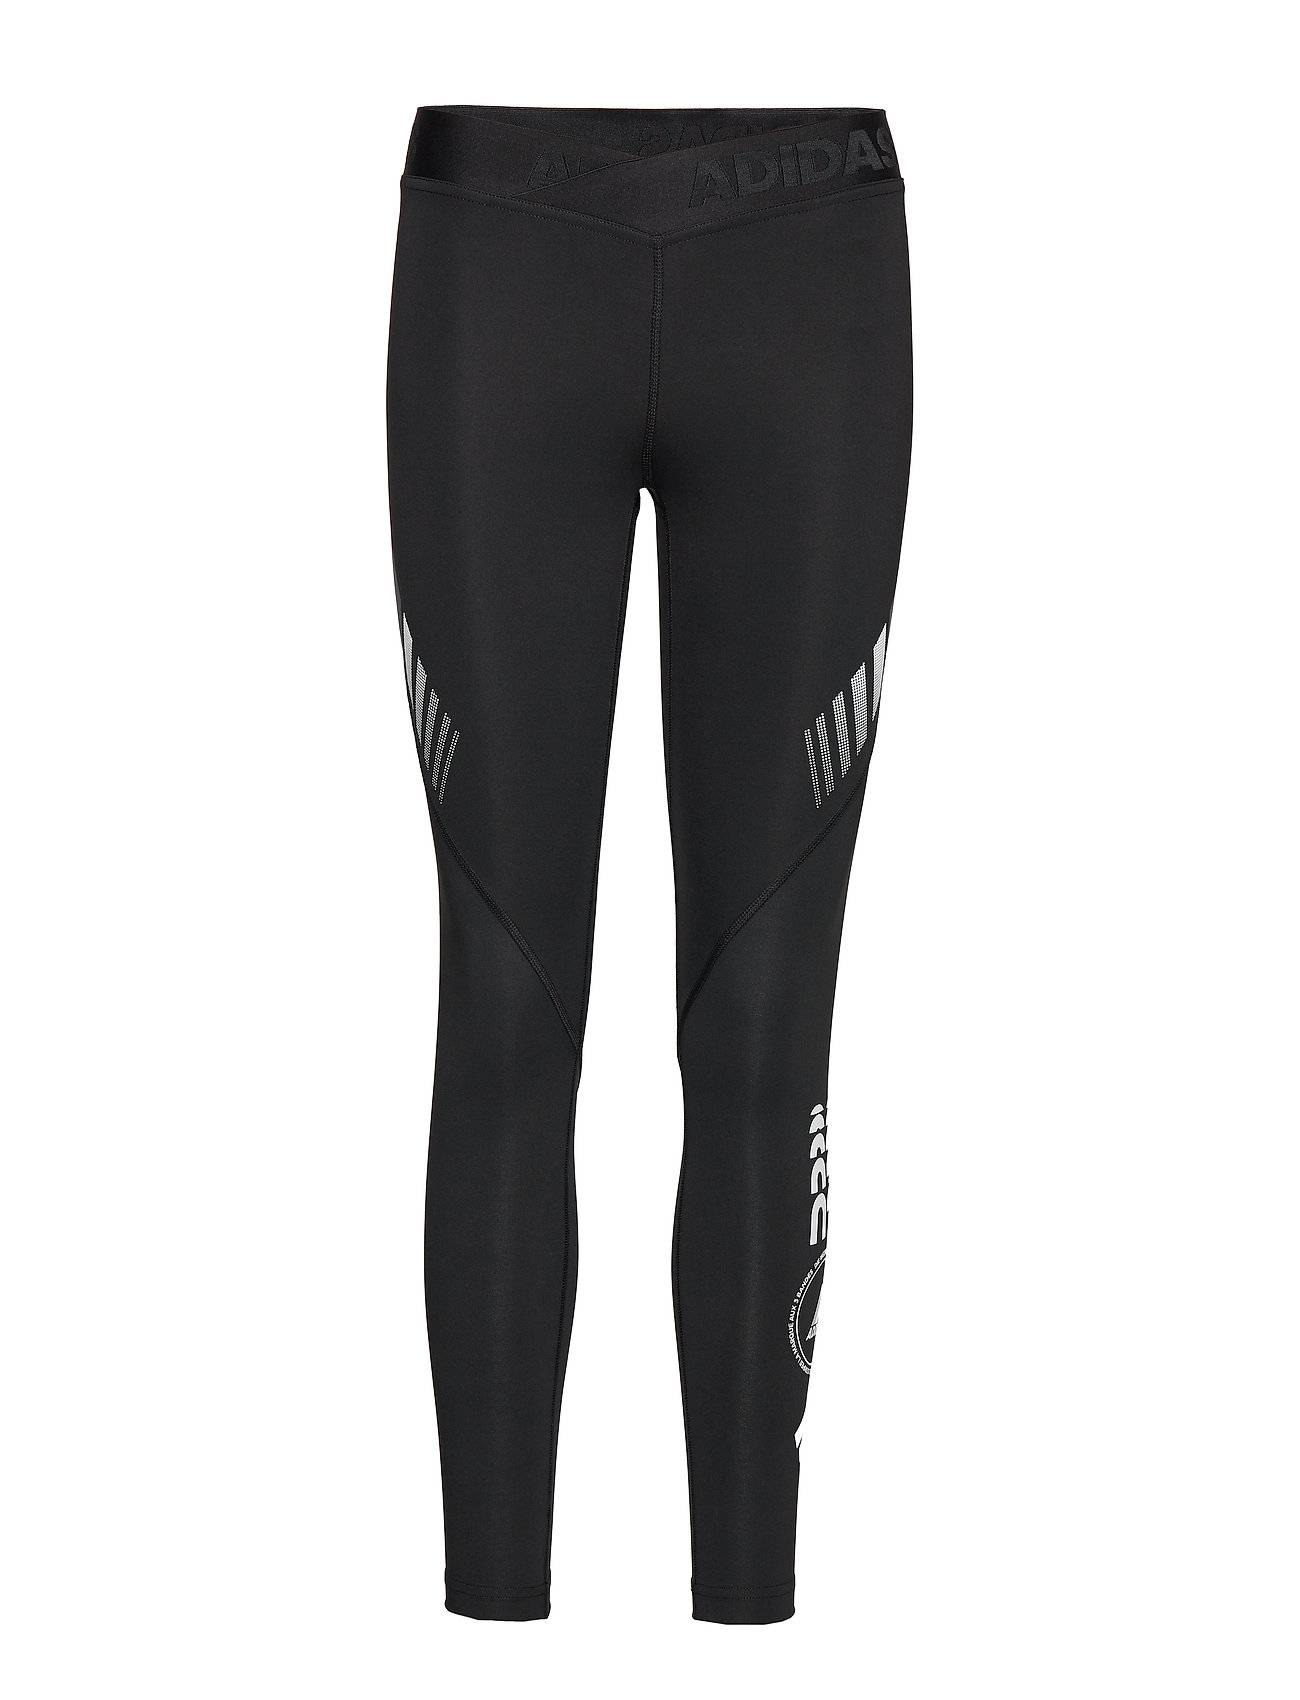 Image of adidas Performance Ask L Moto T Running/training Tights Musta Adidas Performance